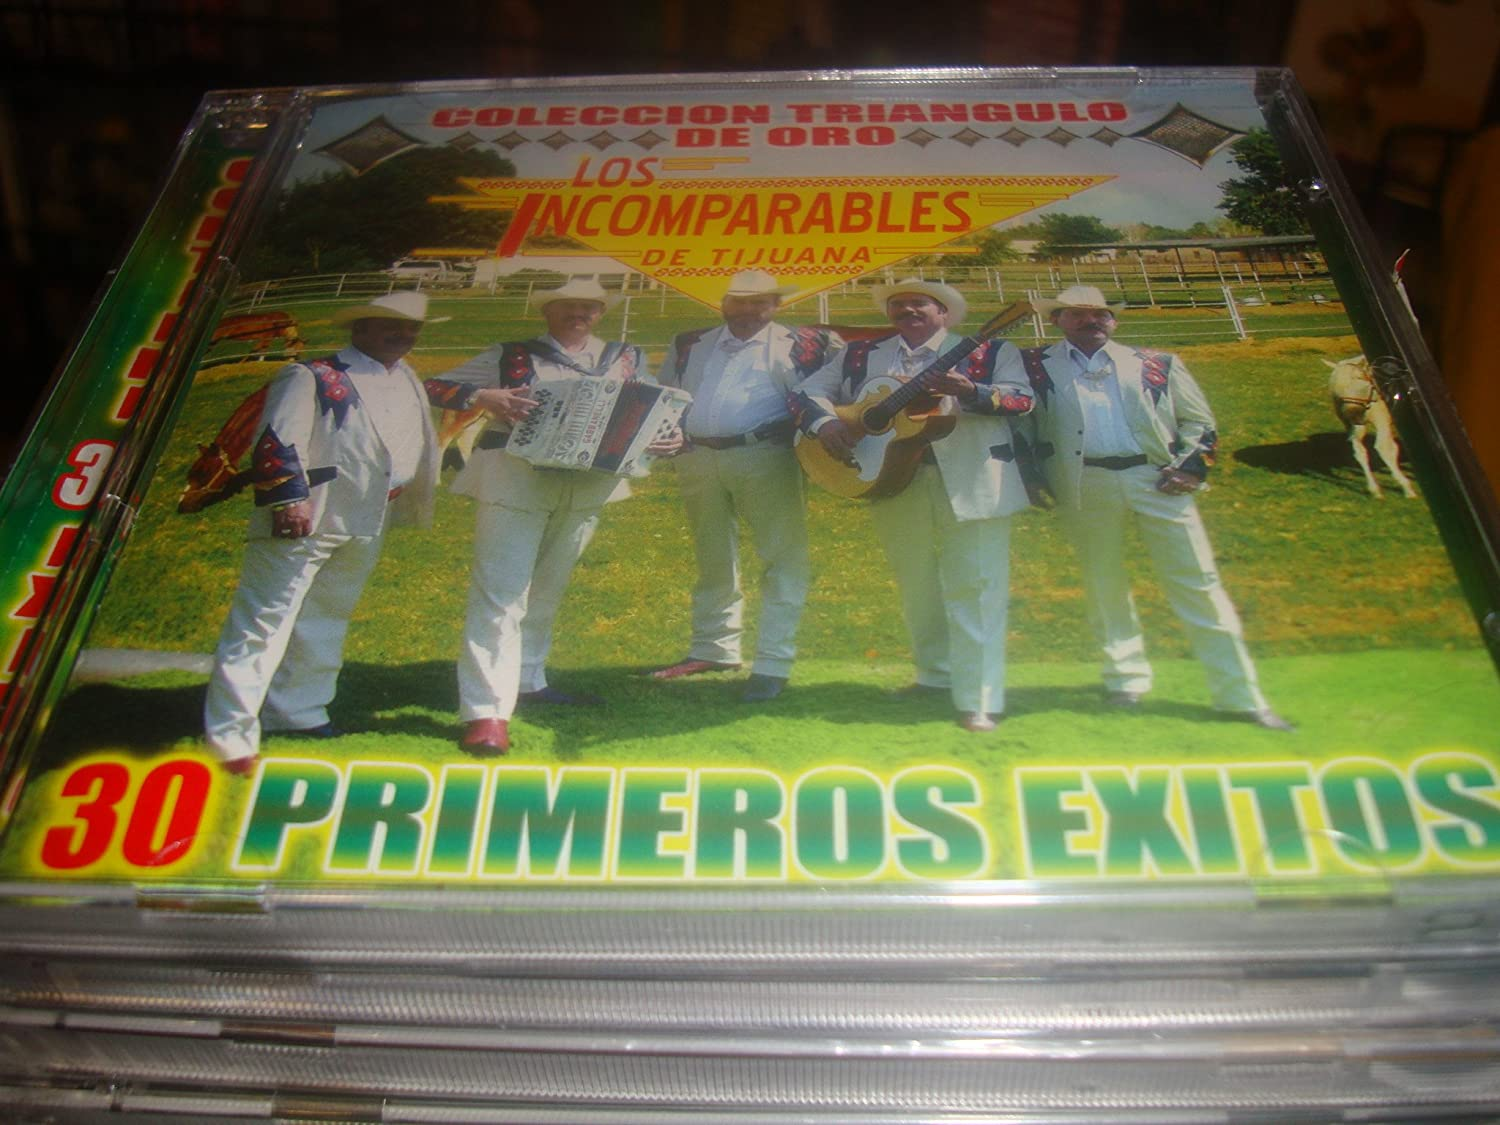 LOS INCOMPARABLES DE TIJUANA - Los Incomparables De Tijuana 30 Primeros Exitos 2cds - Amazon.com Music